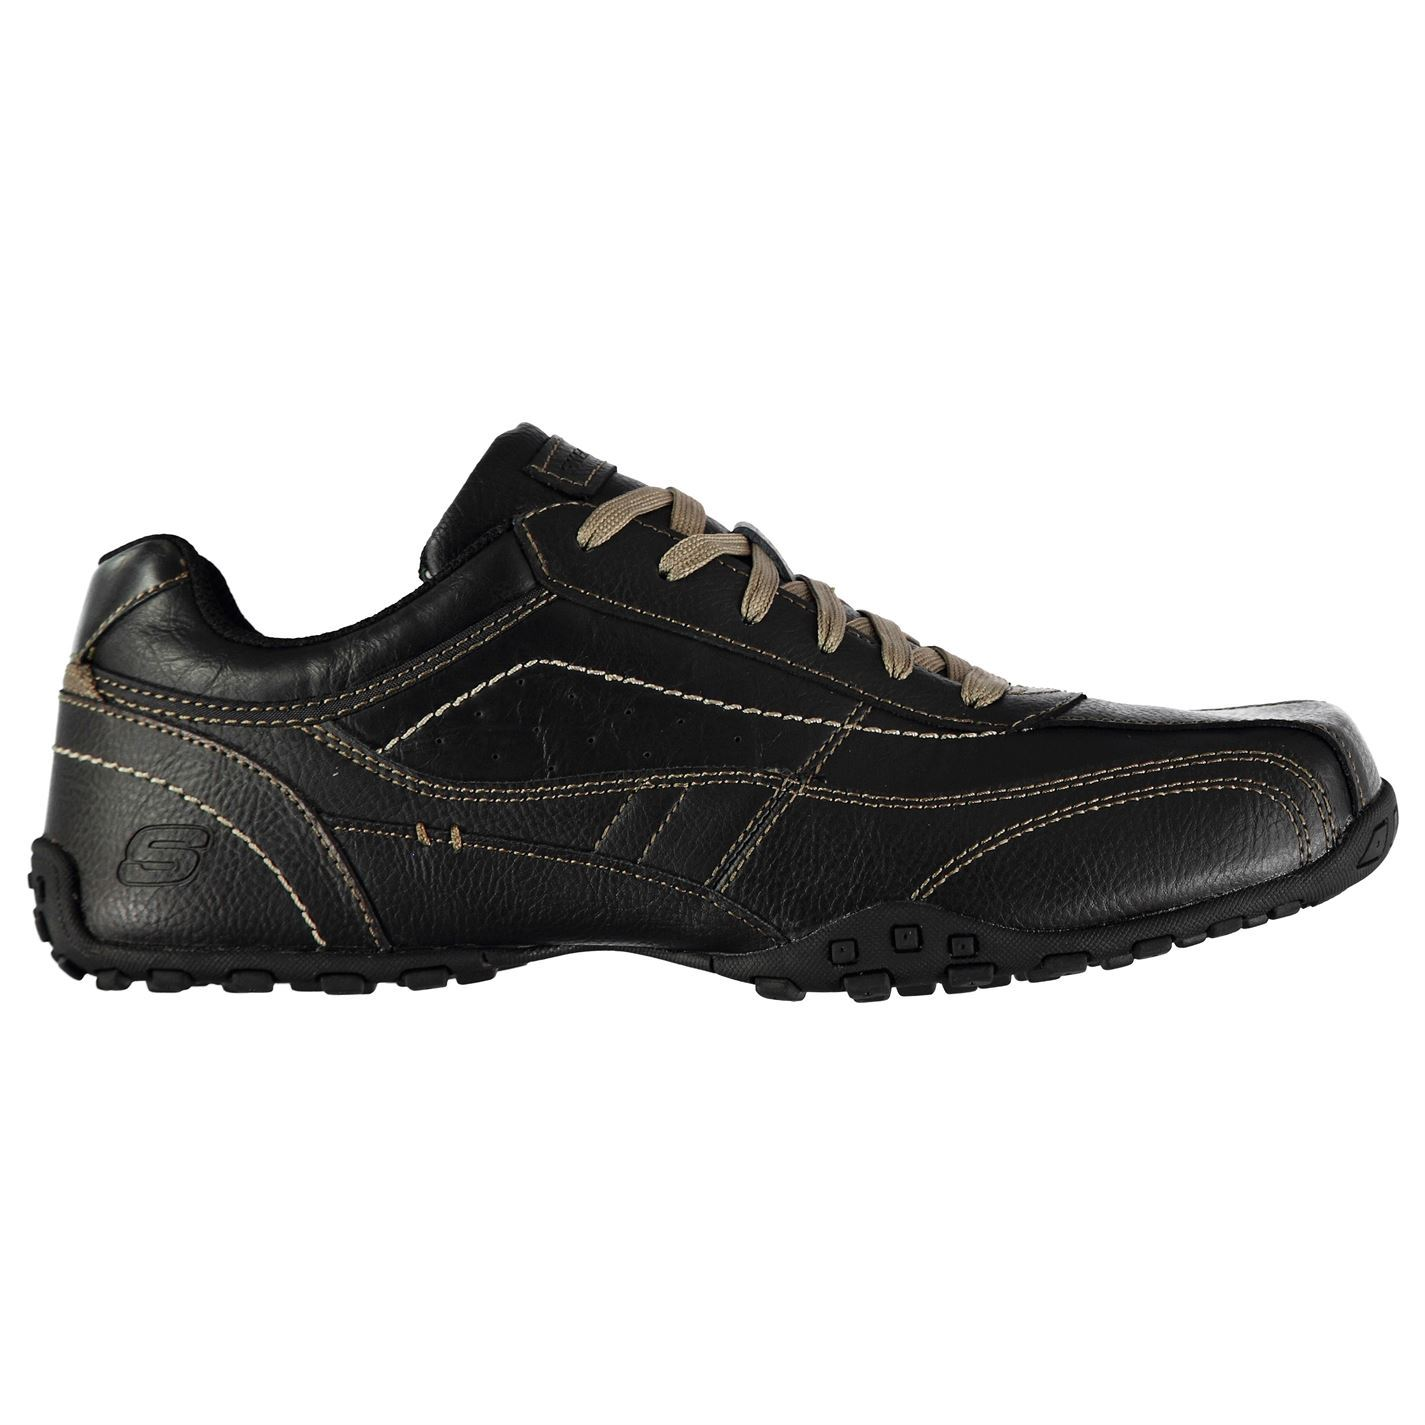 Skechers Schuhes  Uomo Citywalk El Schuhes Skechers Casual Lace Up Padded Ankle Collar Comfortable 0e908c